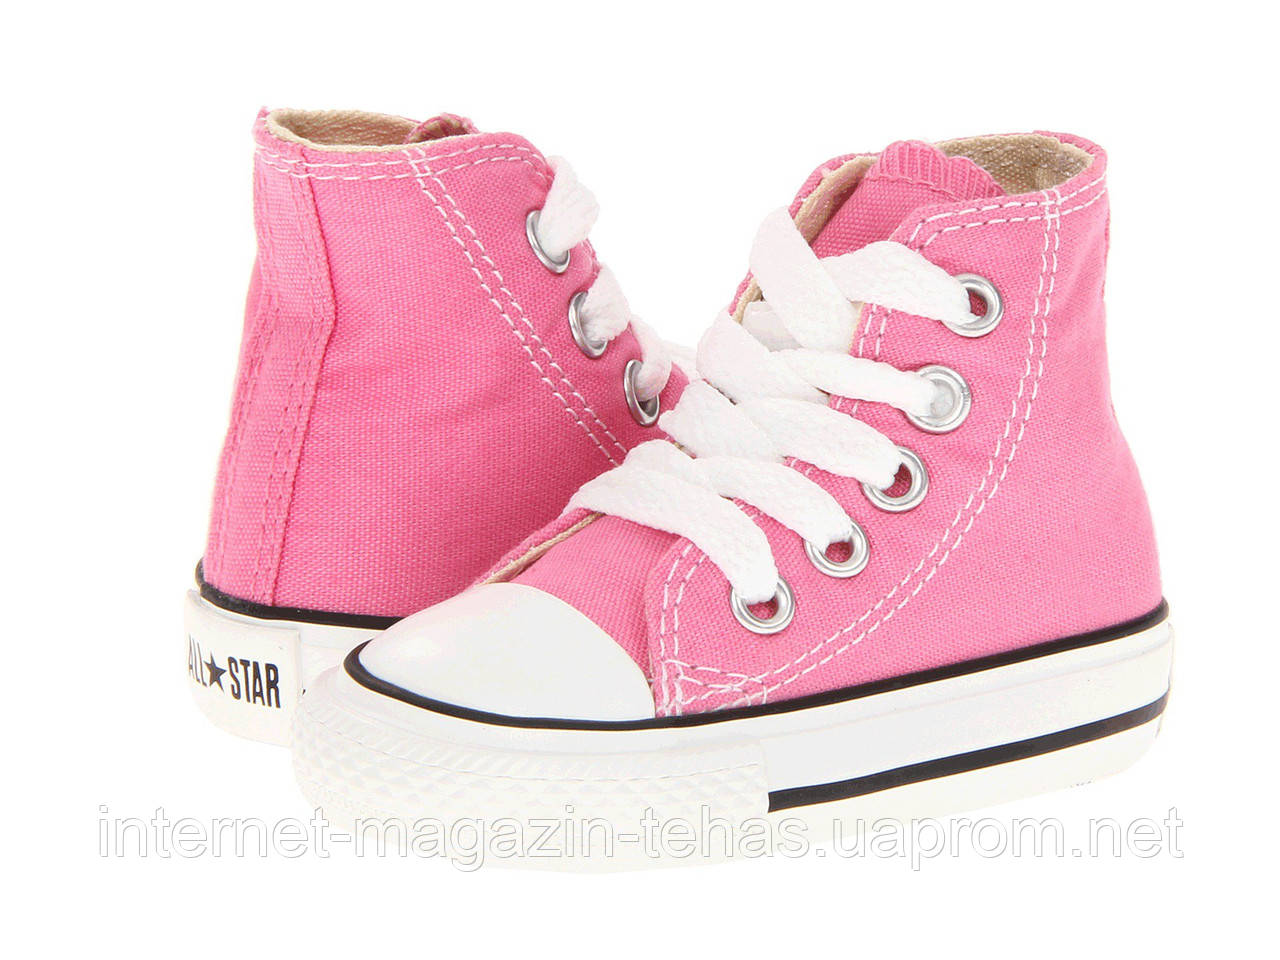 ea7d0f315f96 Детские кеды Converse Chuck Taylor All Star High Pink (конверсы ) -  Интернет-магазин